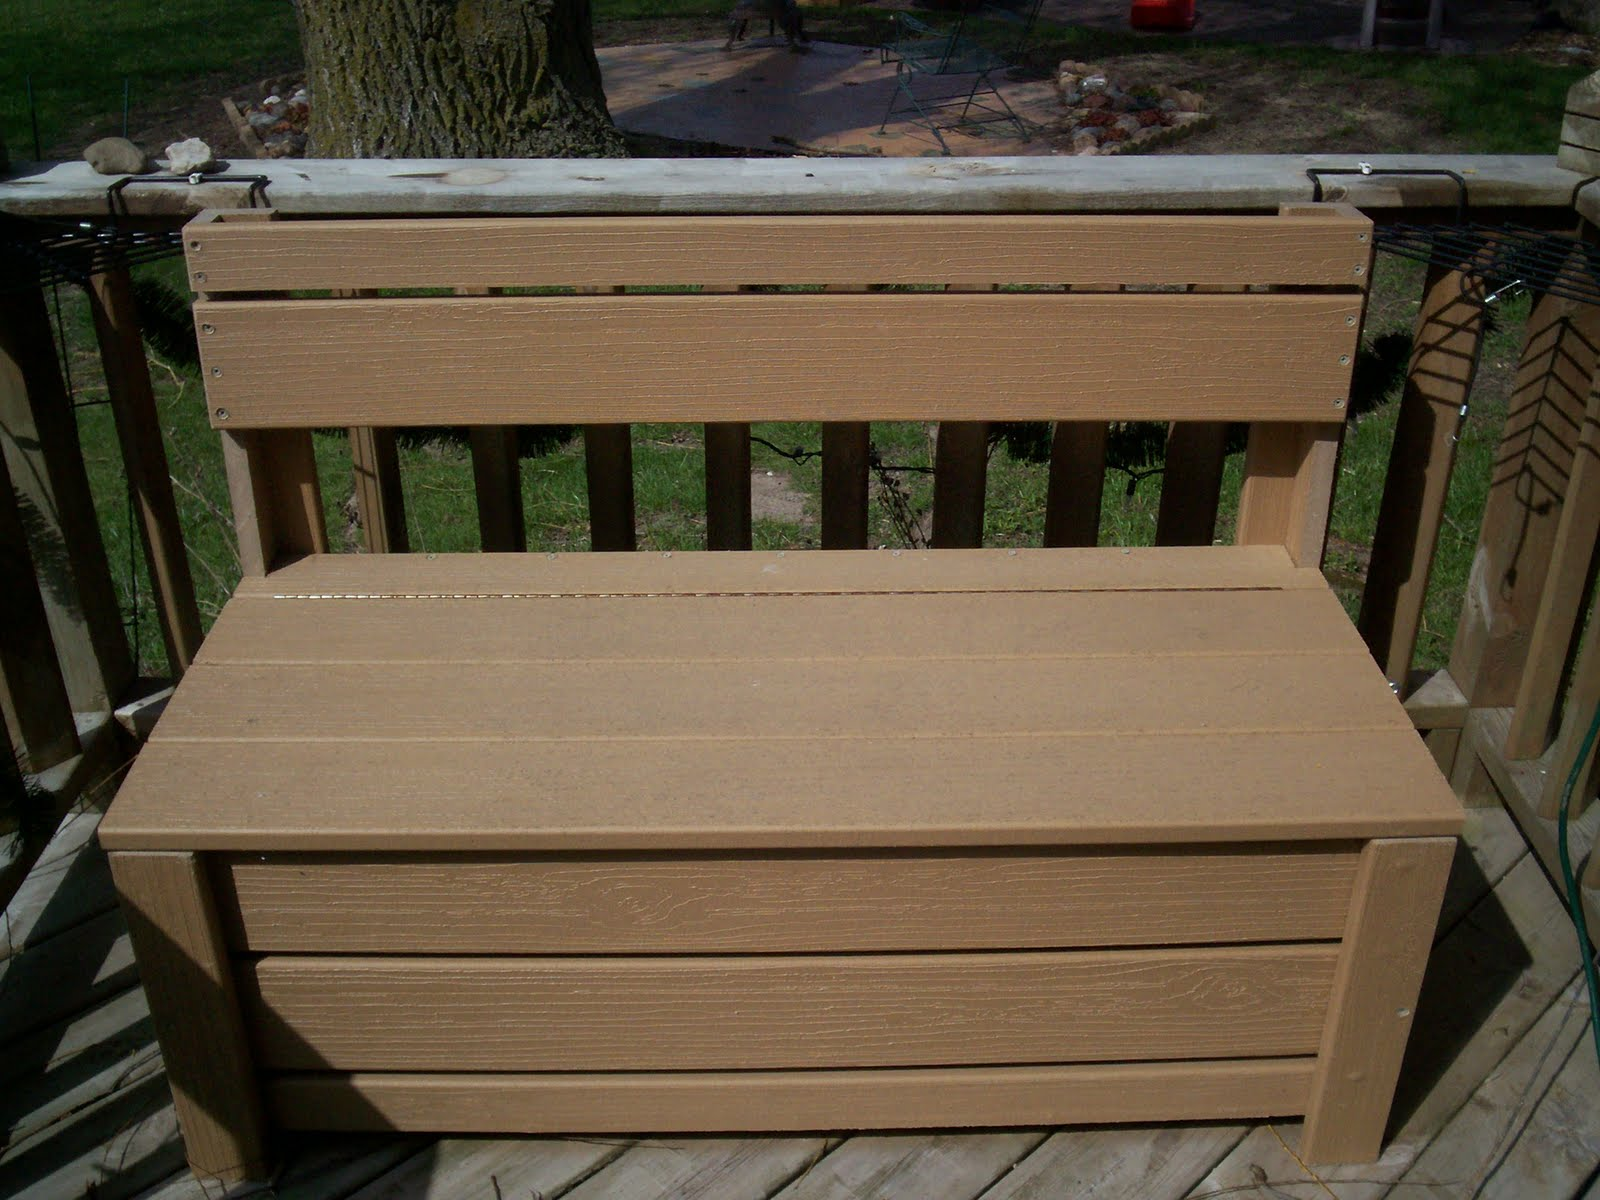 Tru tales feats deck storage bench Deck storage bench